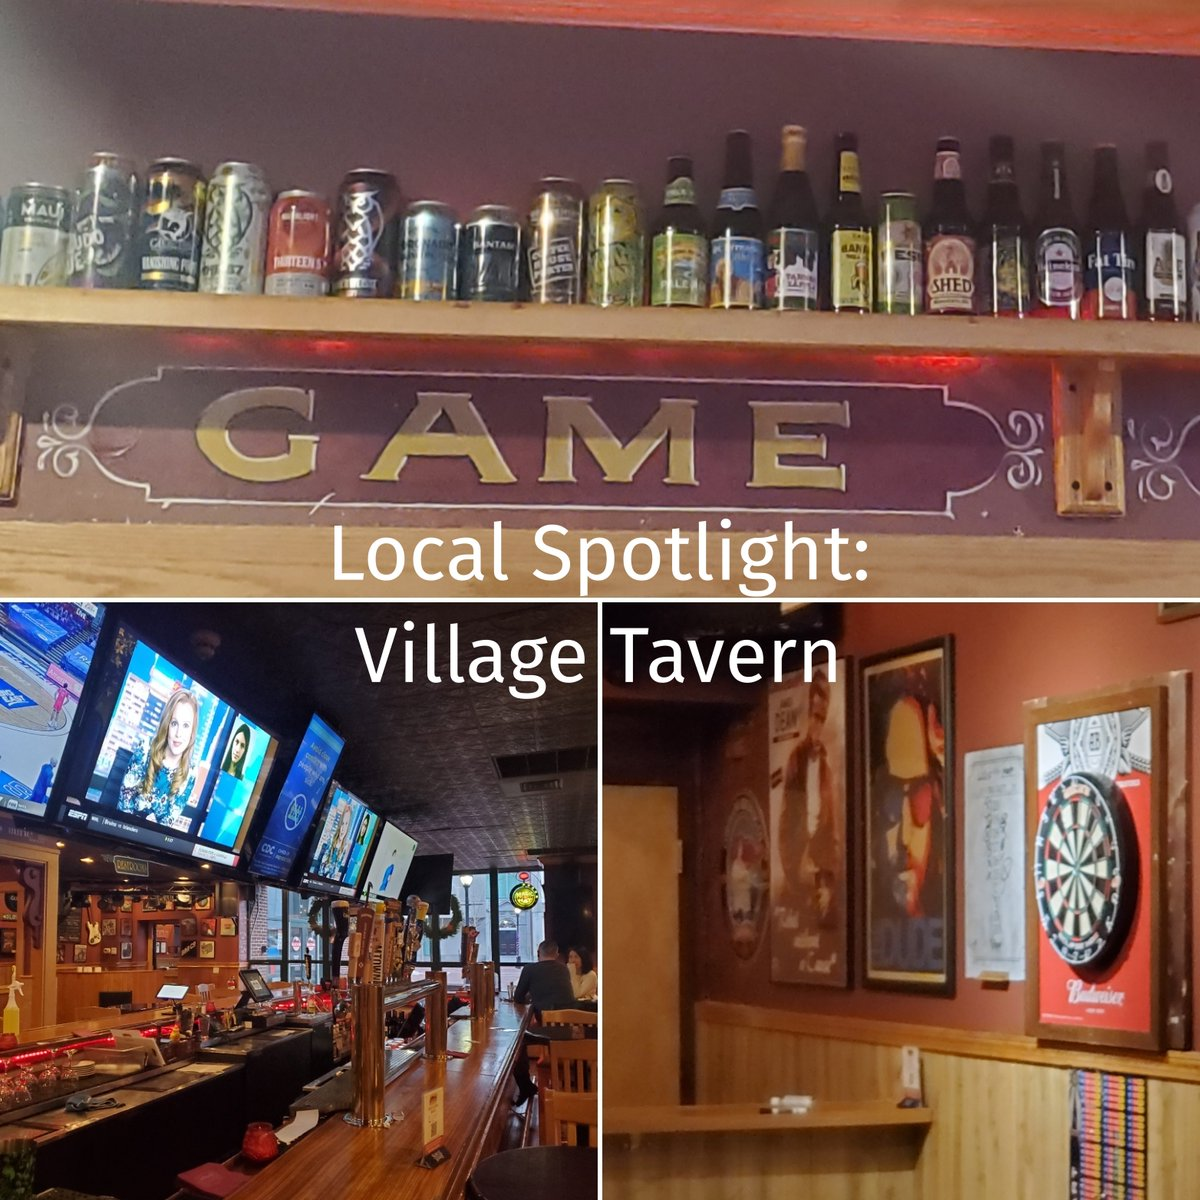 Need a spot to grab a wide variety of draft and bottled beers, catch a game, or throw some darts? Give the Ingemi brothers some support by stopping by Village Tavern! . #doyougulu #staylocalsalem #eatlocal #dinelocal #salemma #salemmarestaurants #localspotlight #salemmabars